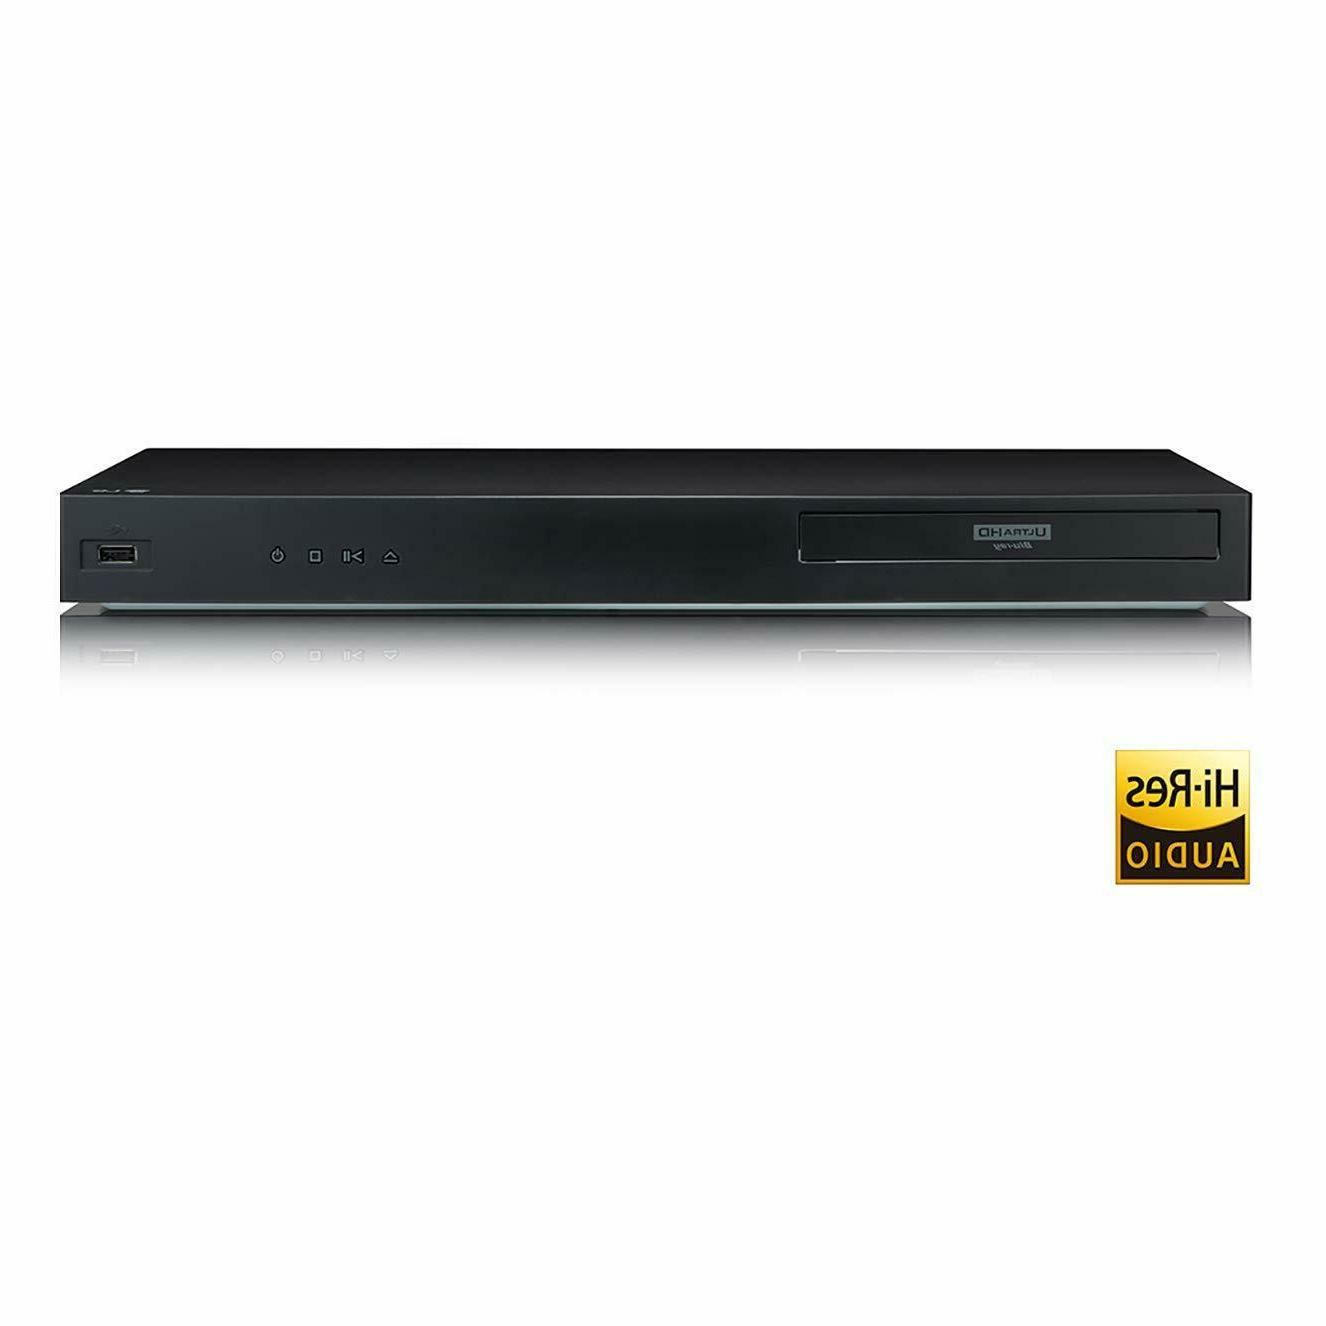 LG UBK80 Blu-ray Player with HDR Compatibility